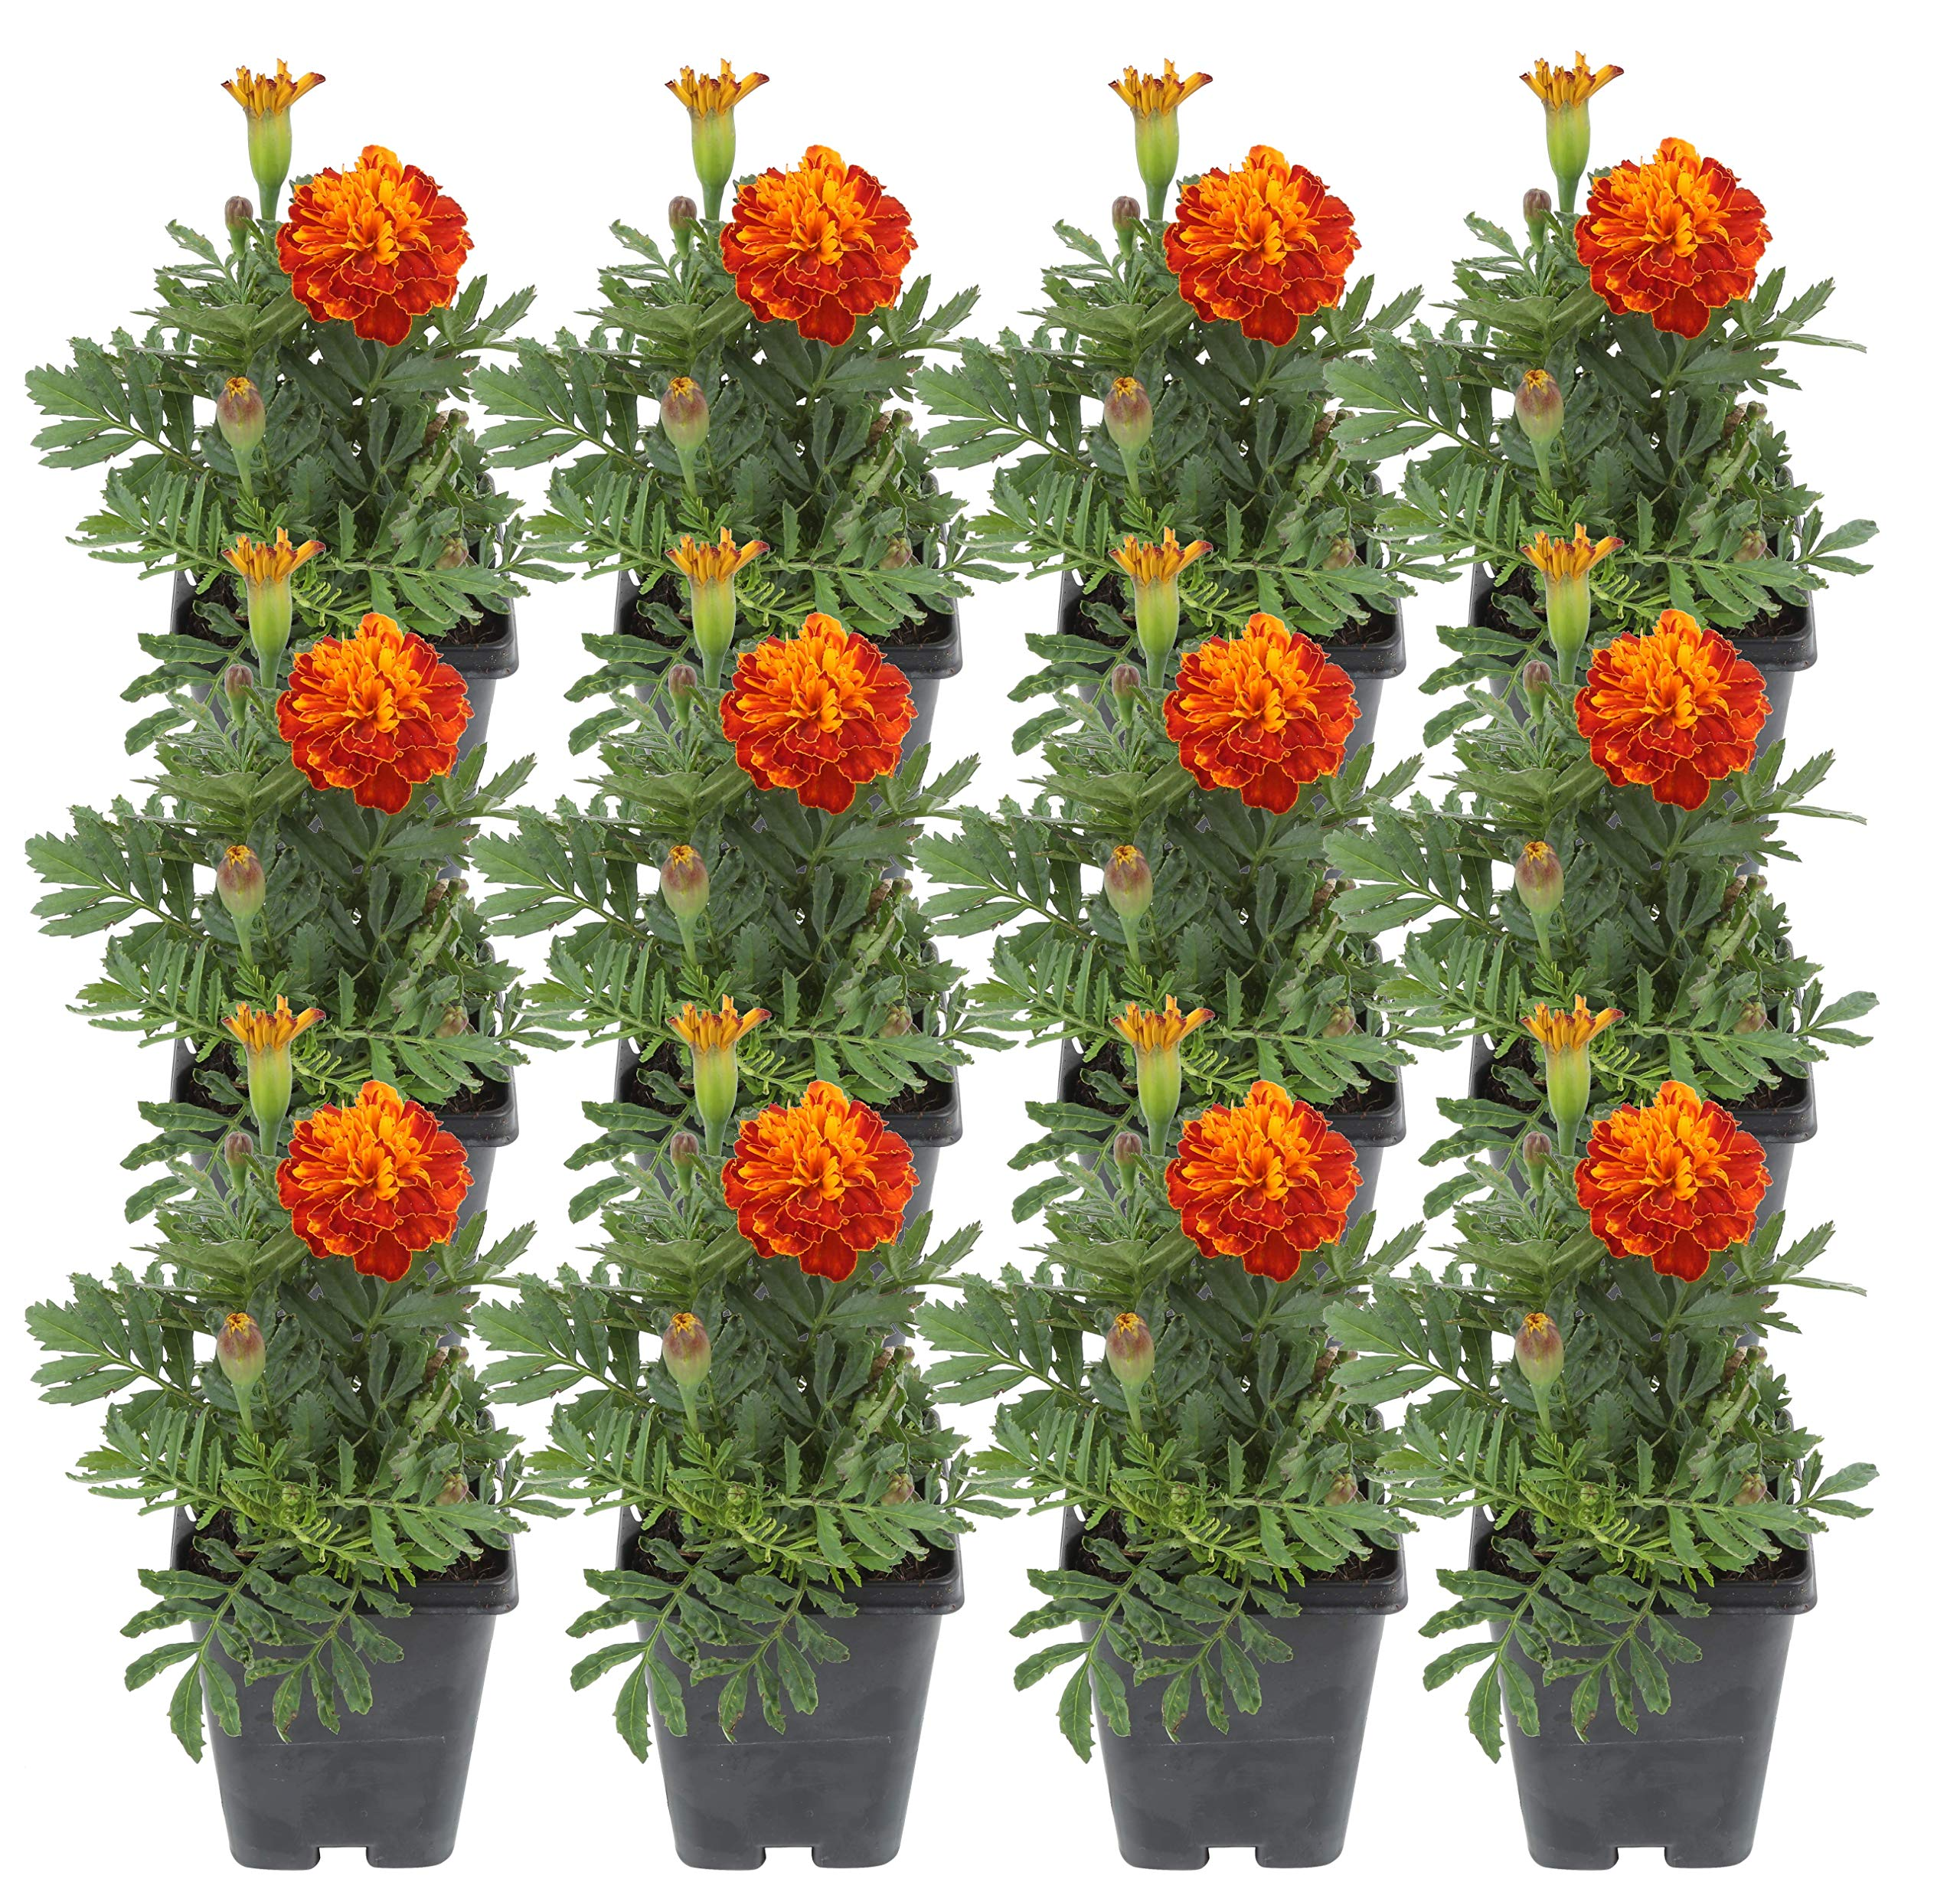 Costa Farms Marigold Live Outdoor Plant 1 PT Grower's Pot, 12-Pack, Orange